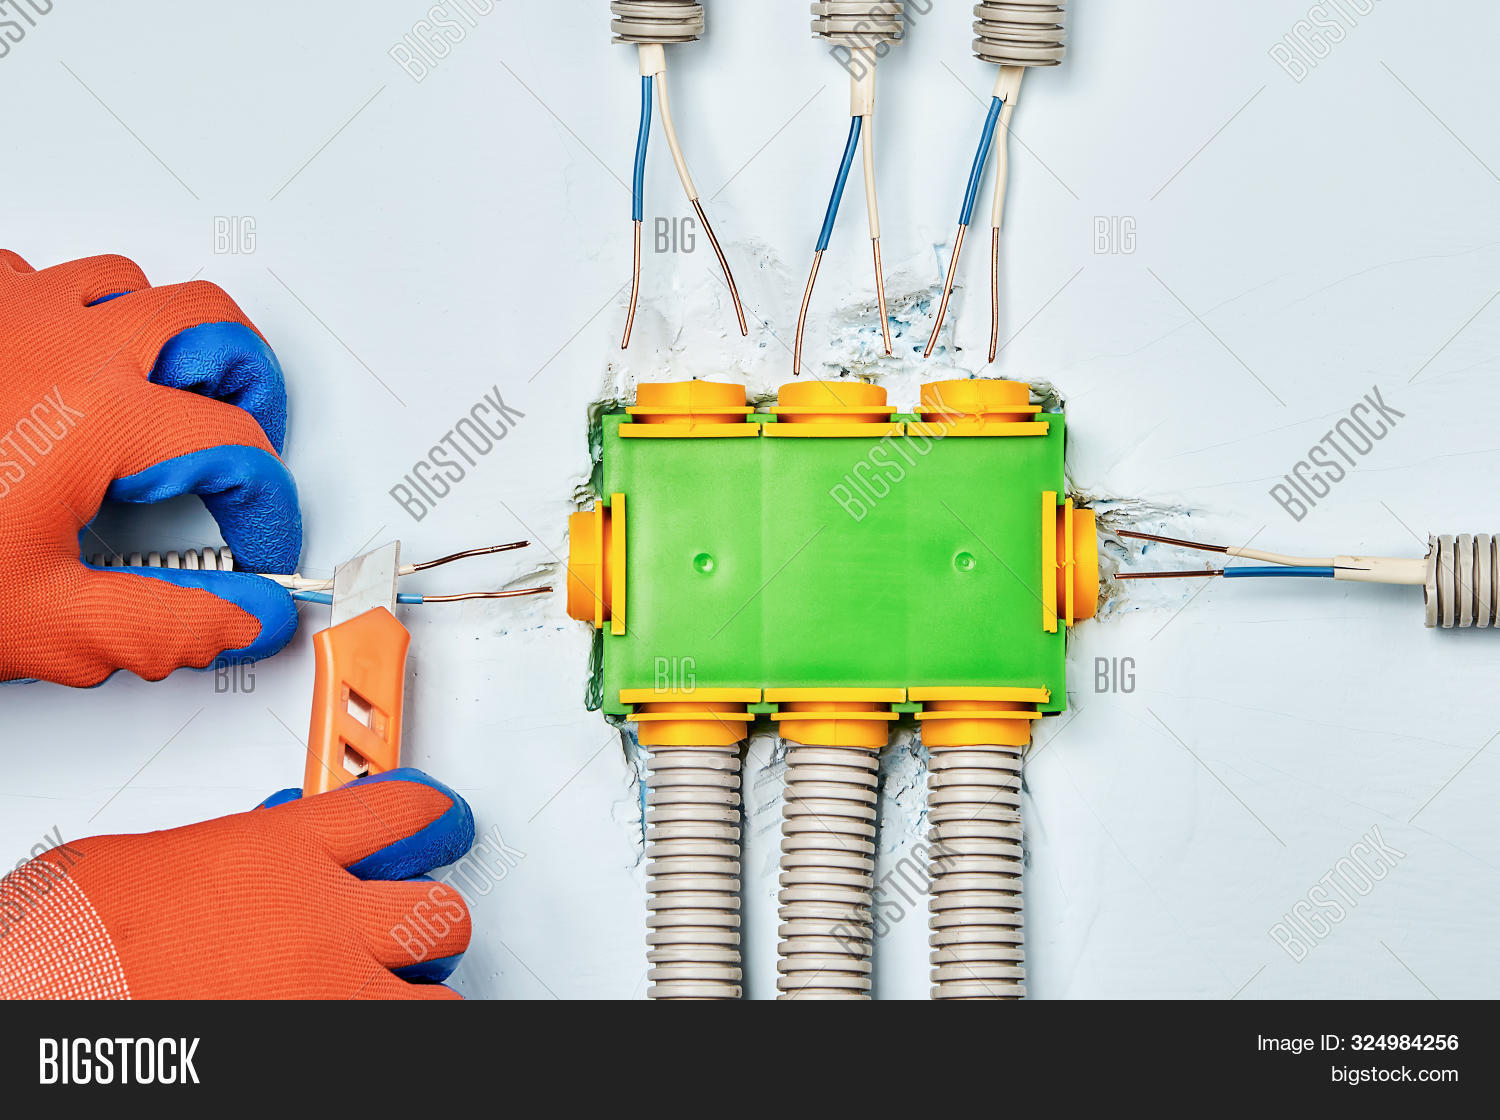 Residential Electrical Image & Photo (Free Trial) | Bigstock on